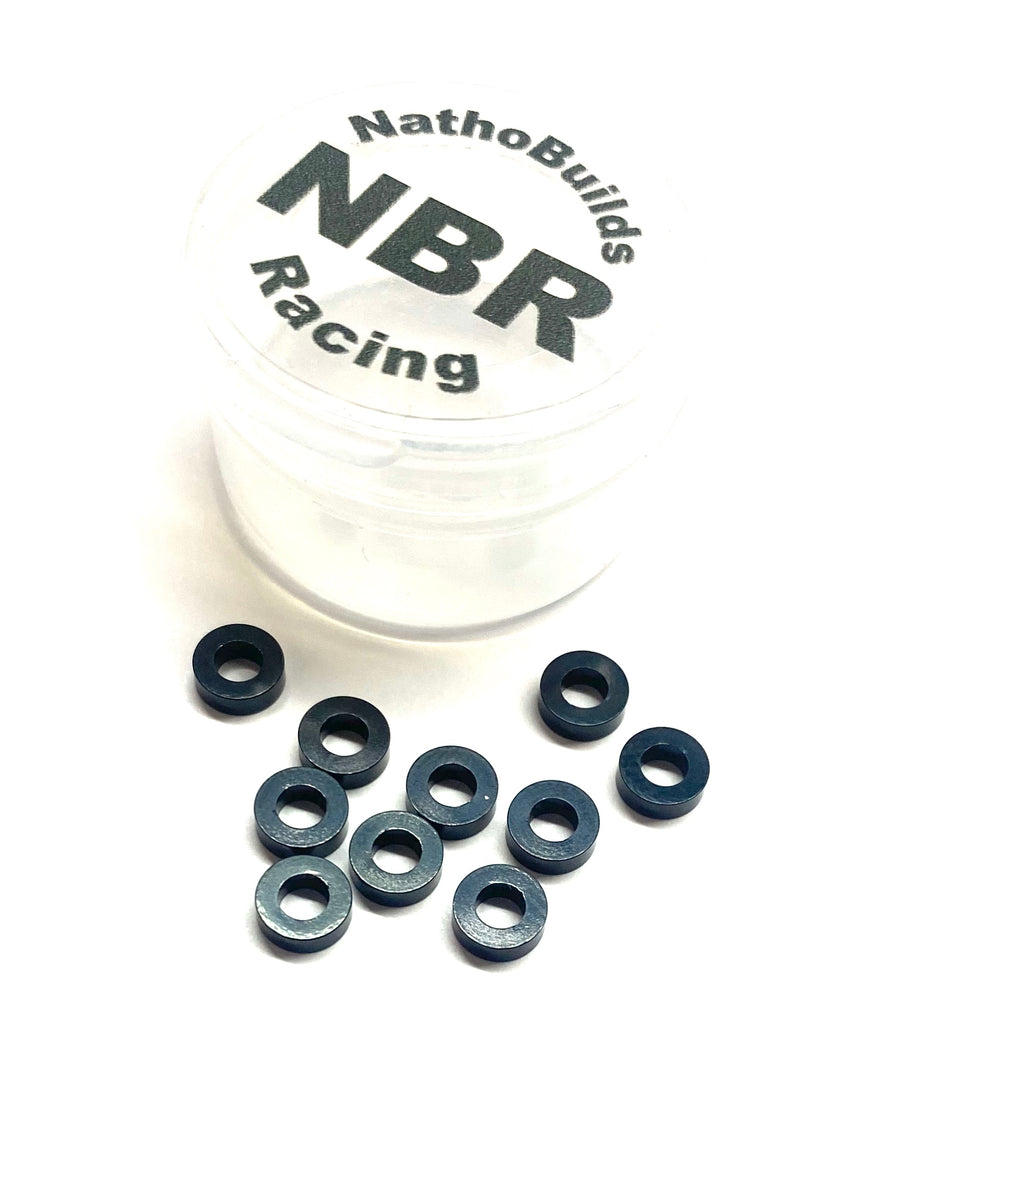 NathoBuilds- M3 Ball Stud Washers 2mm 10pcs Black